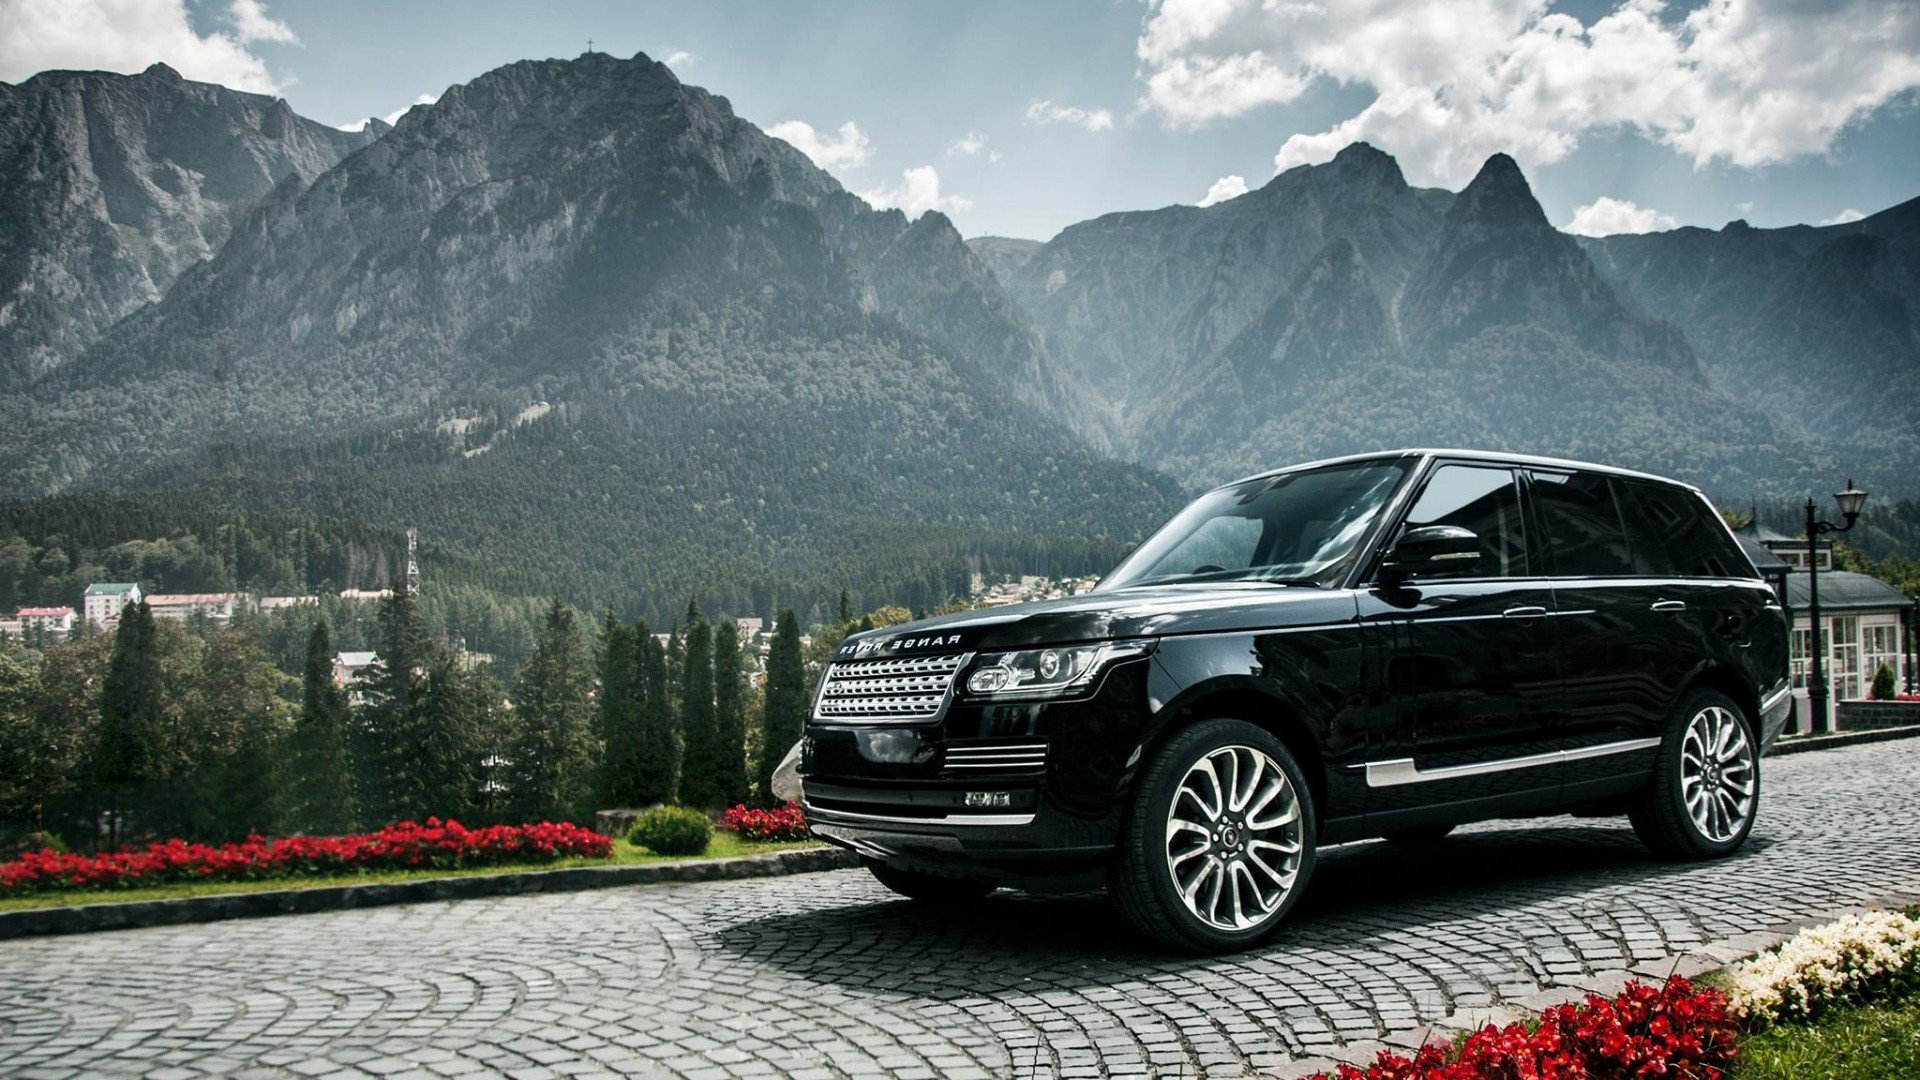 Range Rover Black Hd Cars 4k Wallpapers Images Backgrounds